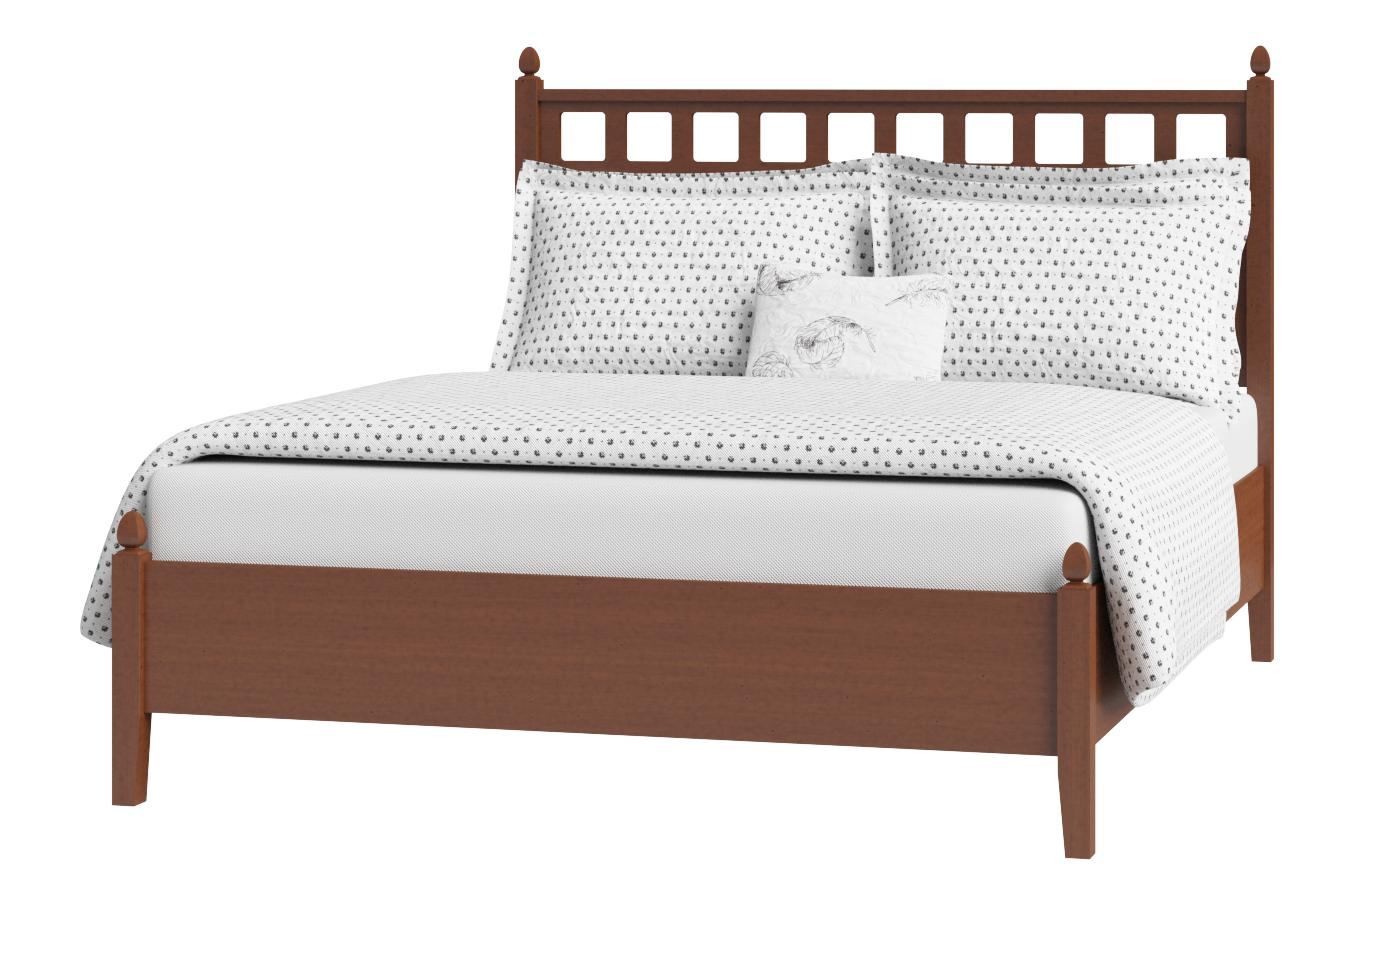 Cutout of Hank low footend wood bed in a dark cherry finish